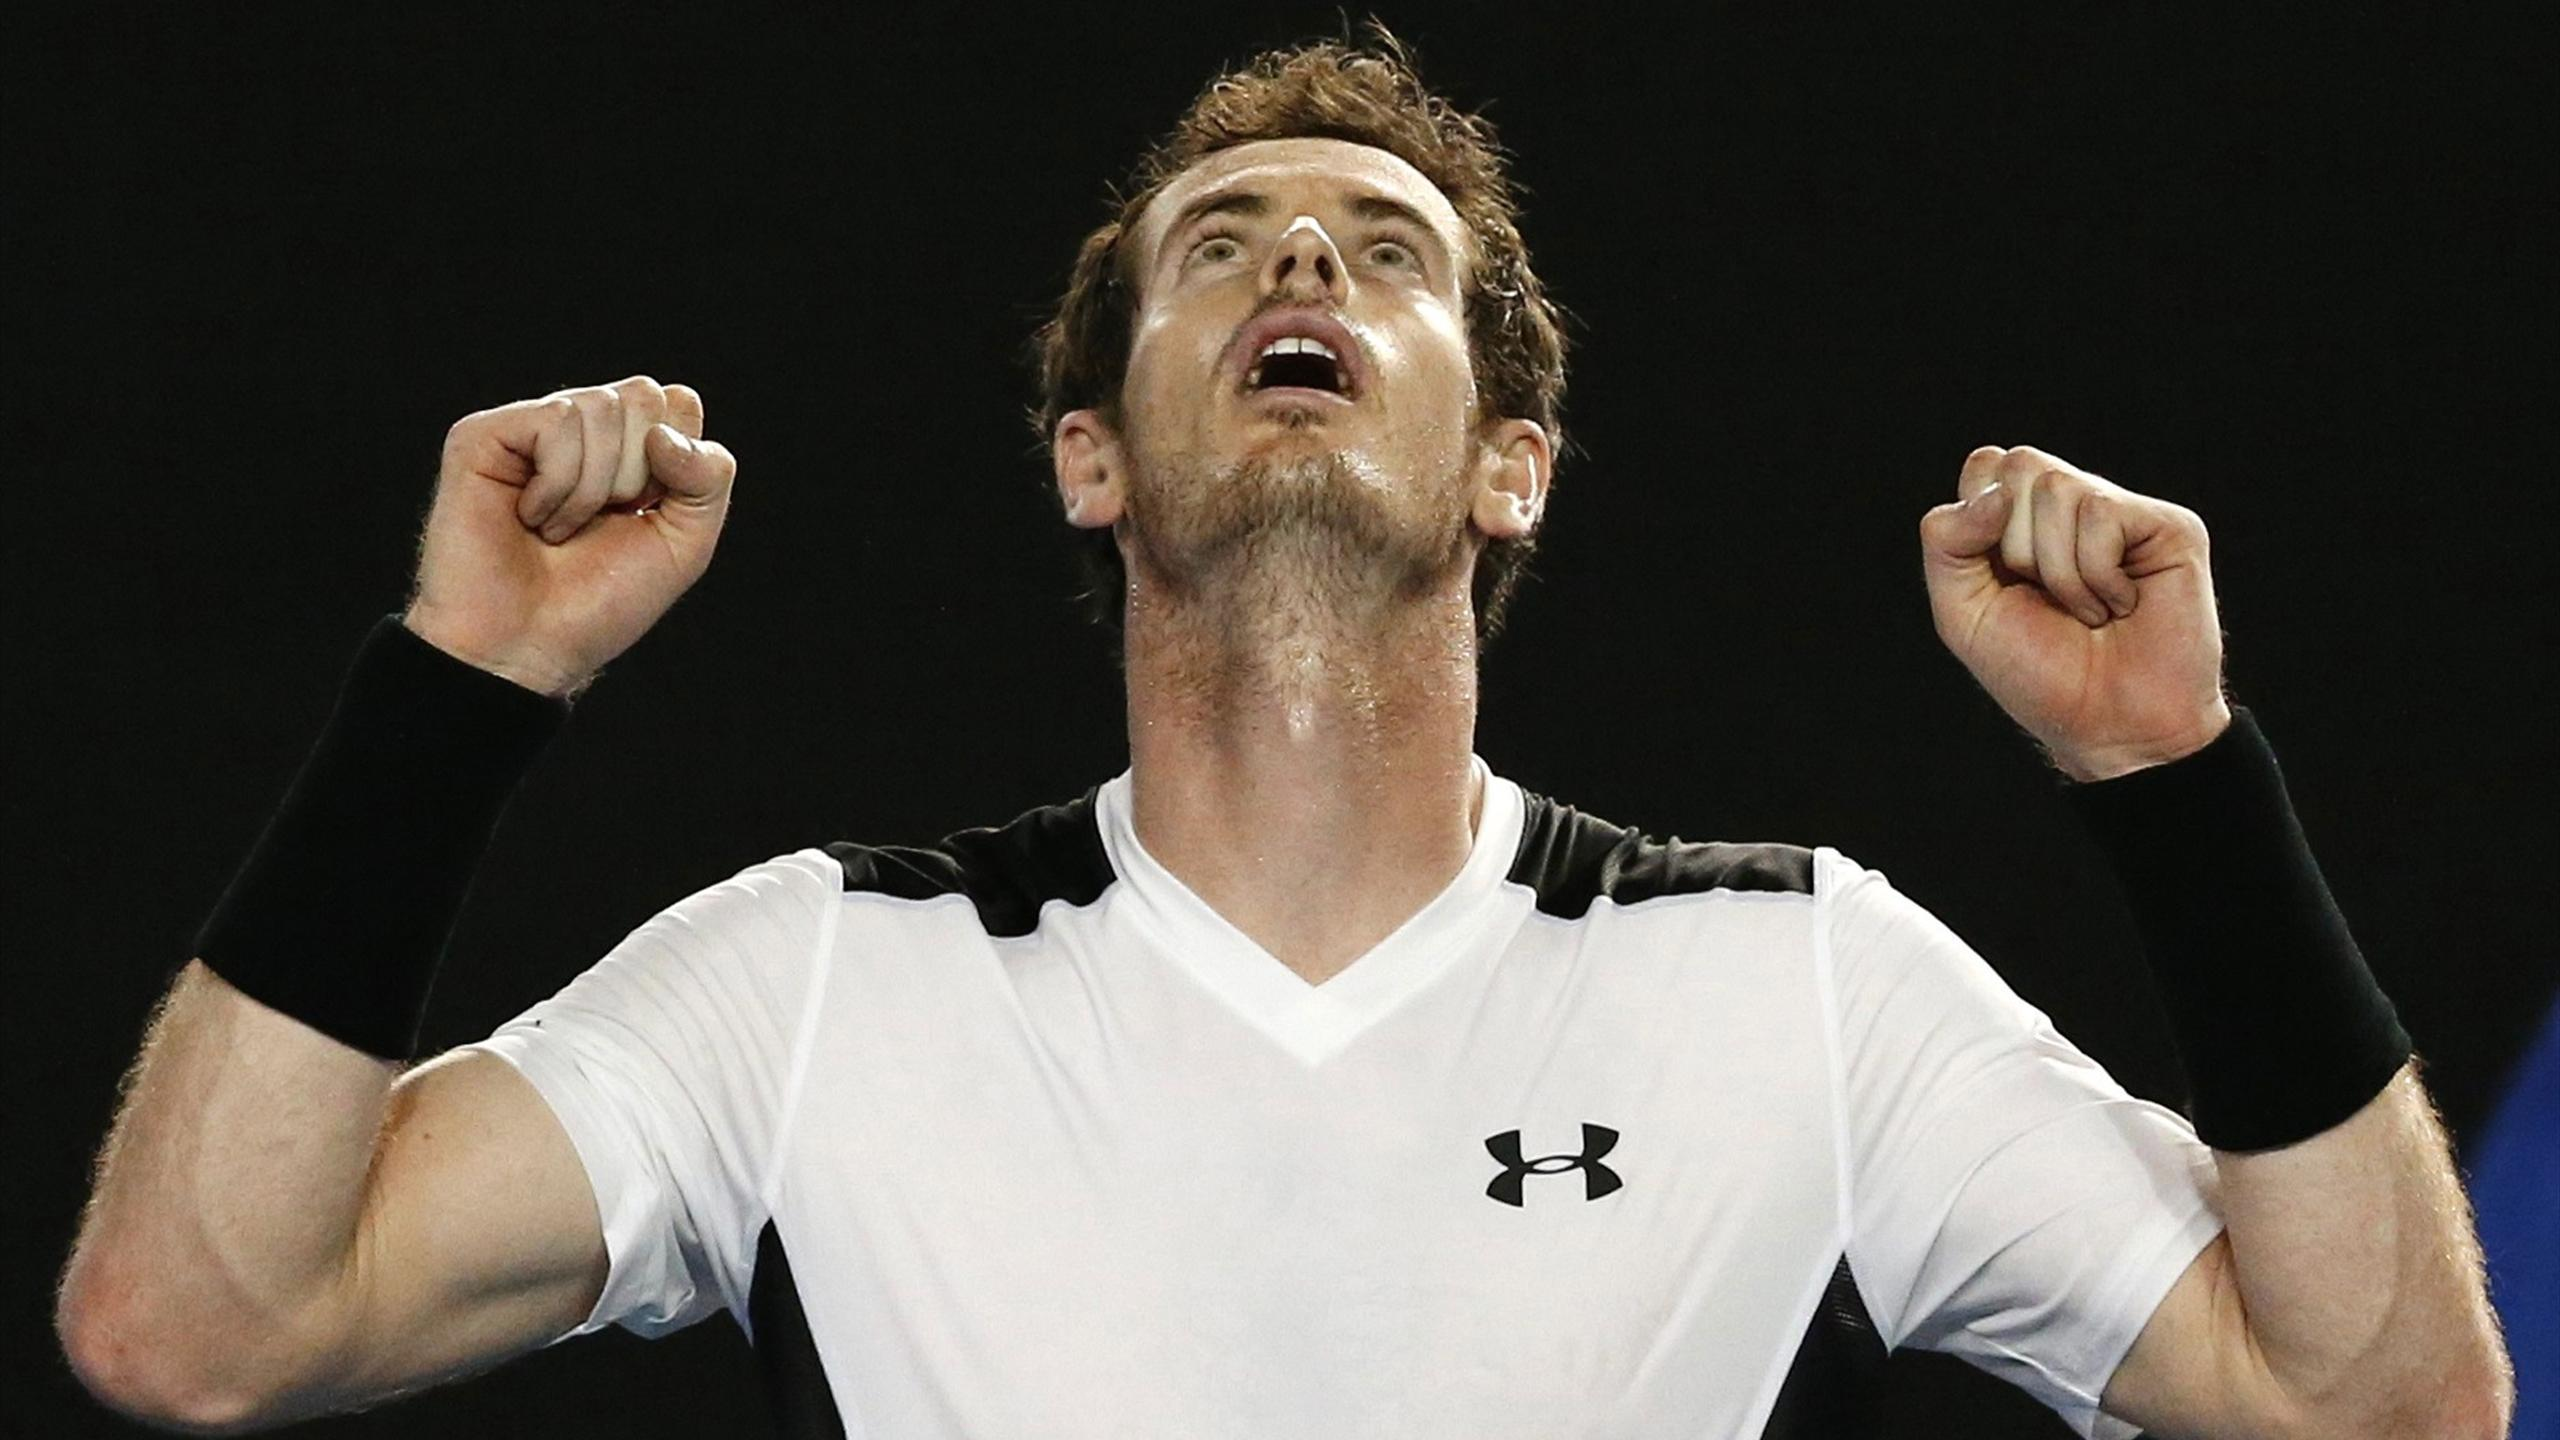 Andy Murray celebrates his Australian Open quarter-final win over David Ferrer